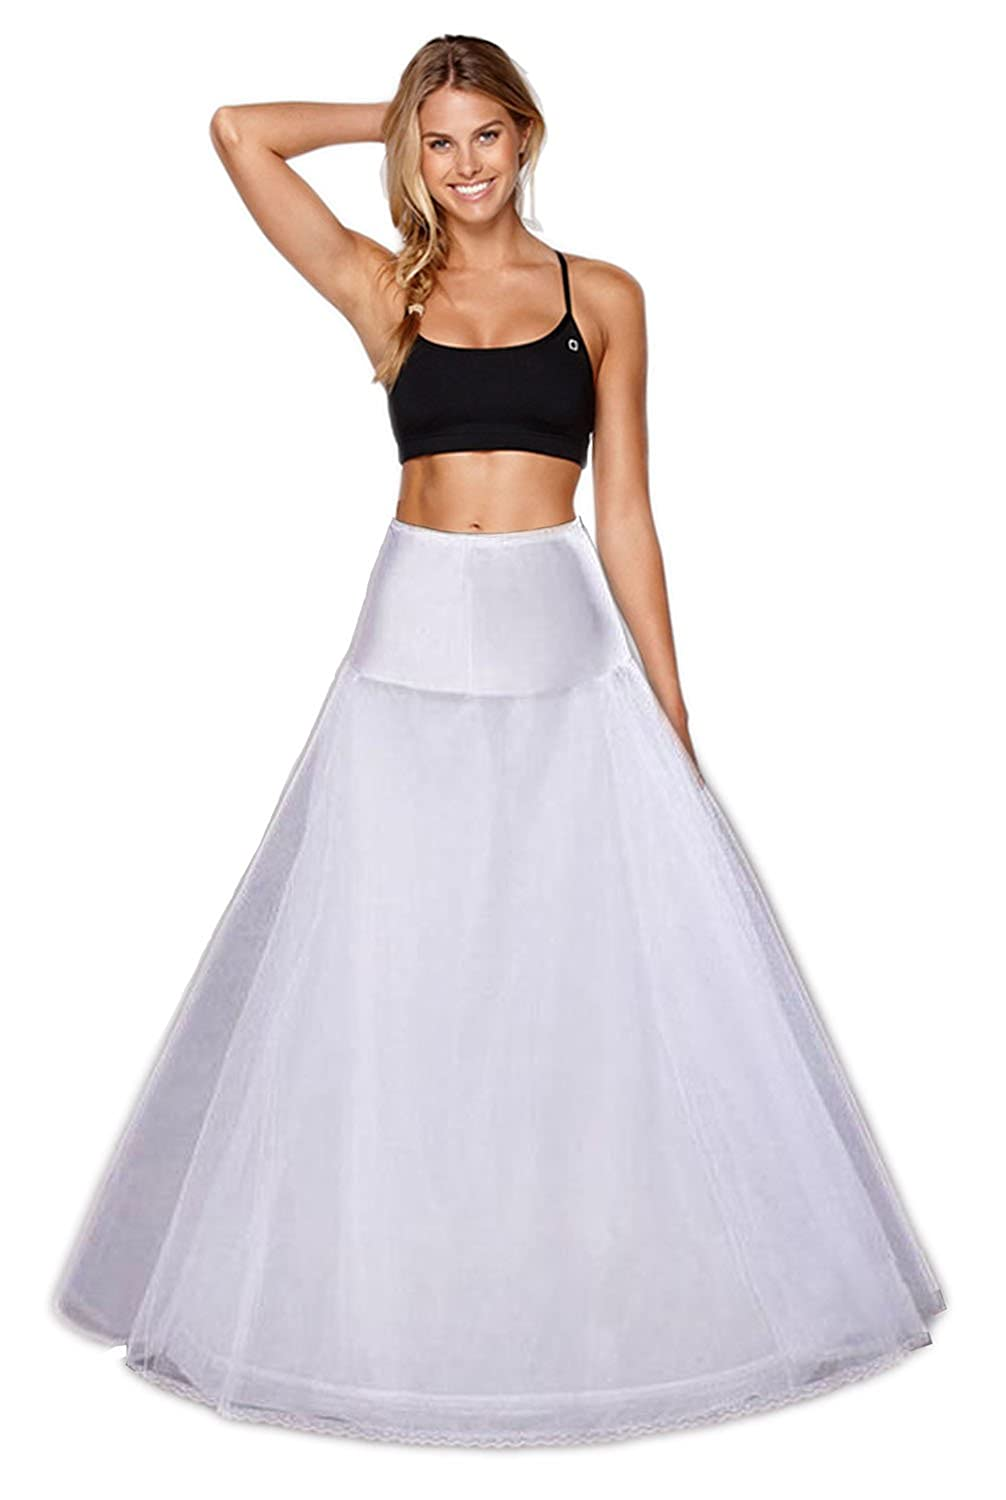 Babydress® Petticoat Wedding Hoop Skirt Wedding Crinoline Hoop a Line Underskirt Shaping Full Slips a Line Petticoat For Wedding Dress Wedding Petticoat Prom Dress White Petticoat Black)